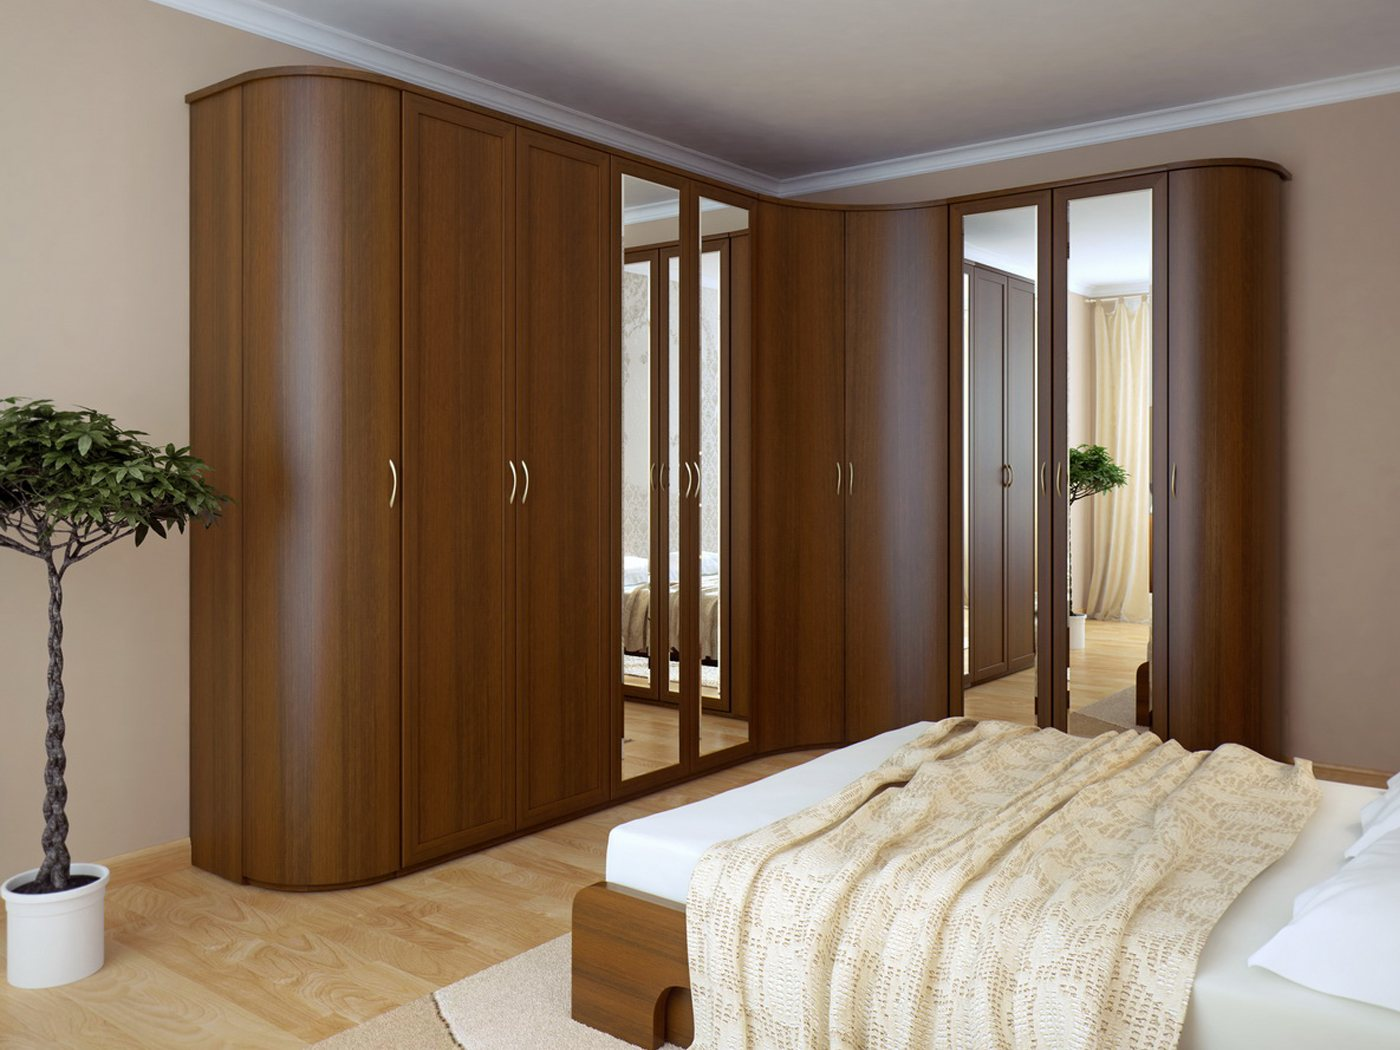 Smooth lines of the wooden l-shaped furniture set with mirrors for bedroom